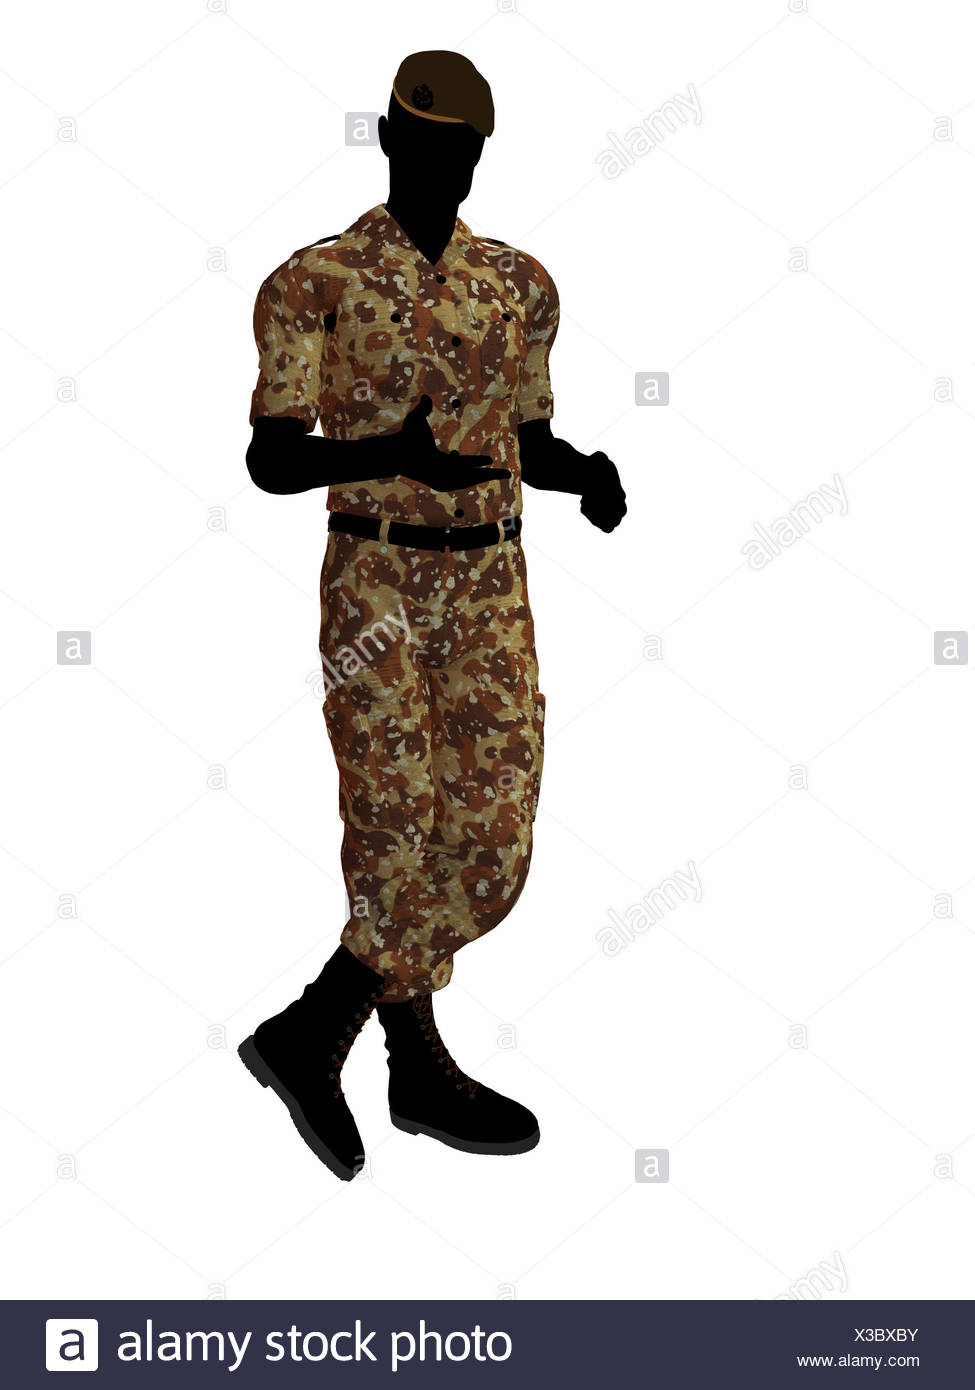 975x1390 Soldier Silhouette Illustration Stock Photos Amp Soldier Silhouette